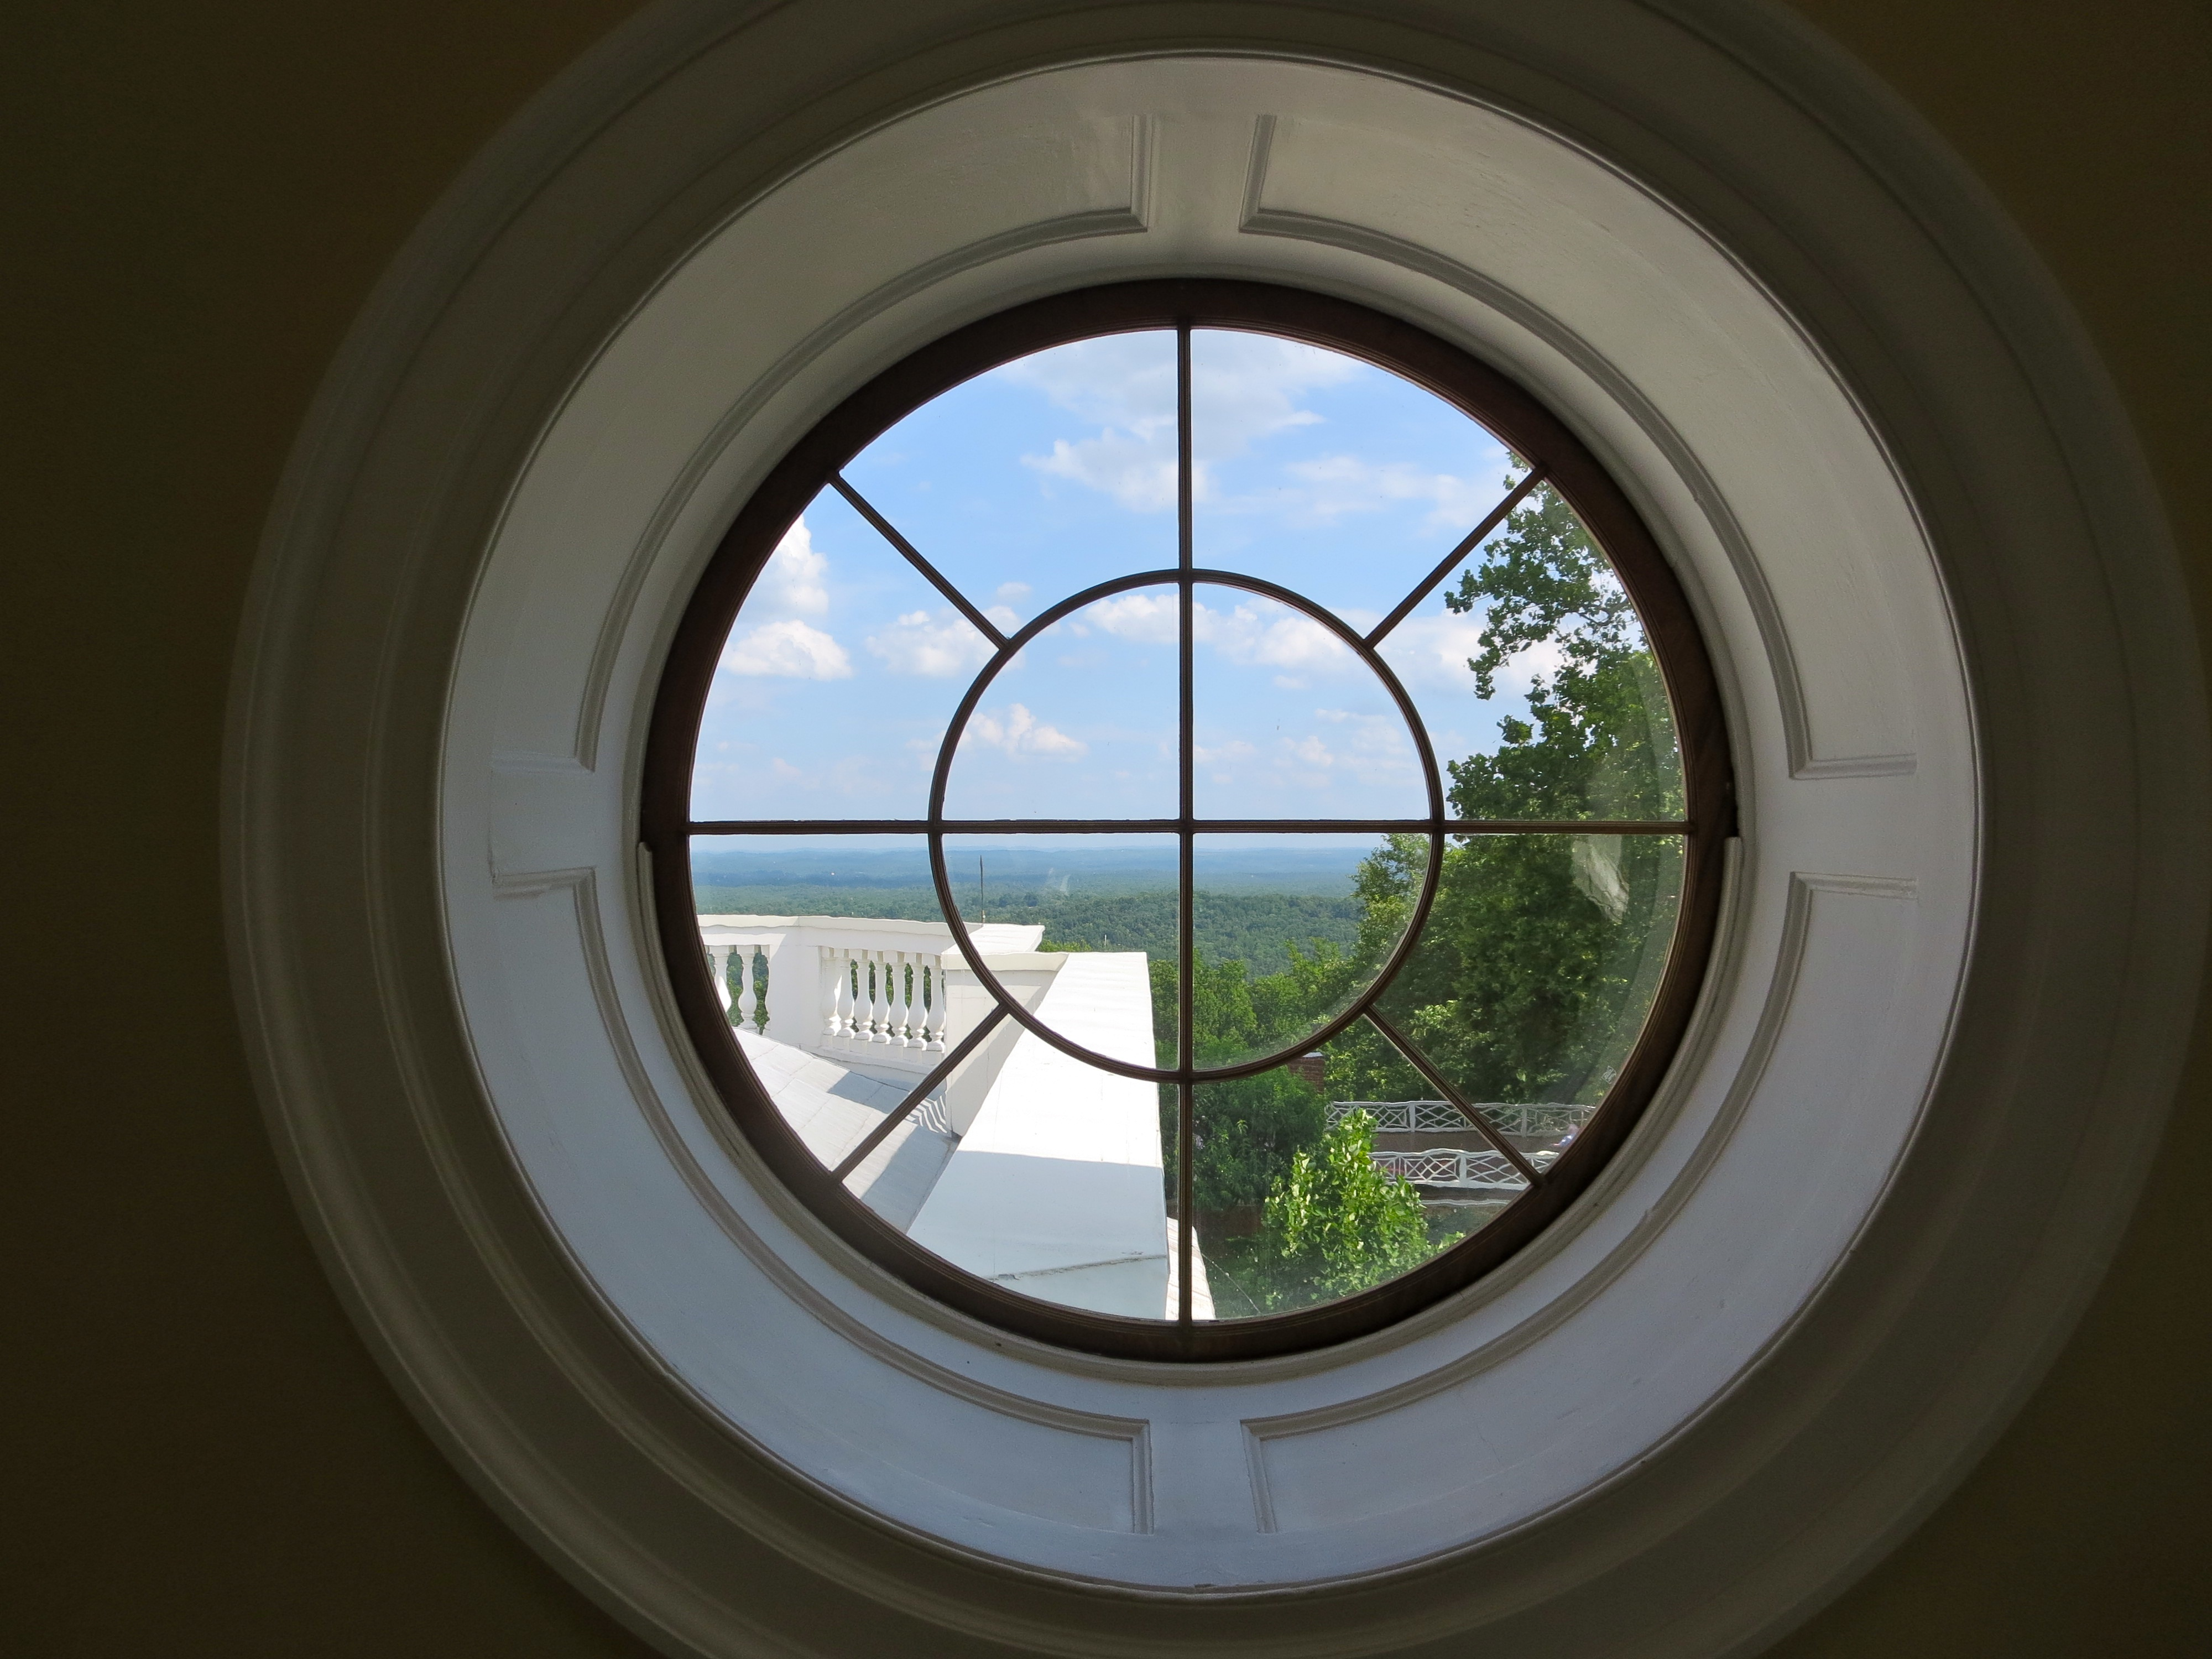 The View From Your Window Contest: Winner #212 – The Dish